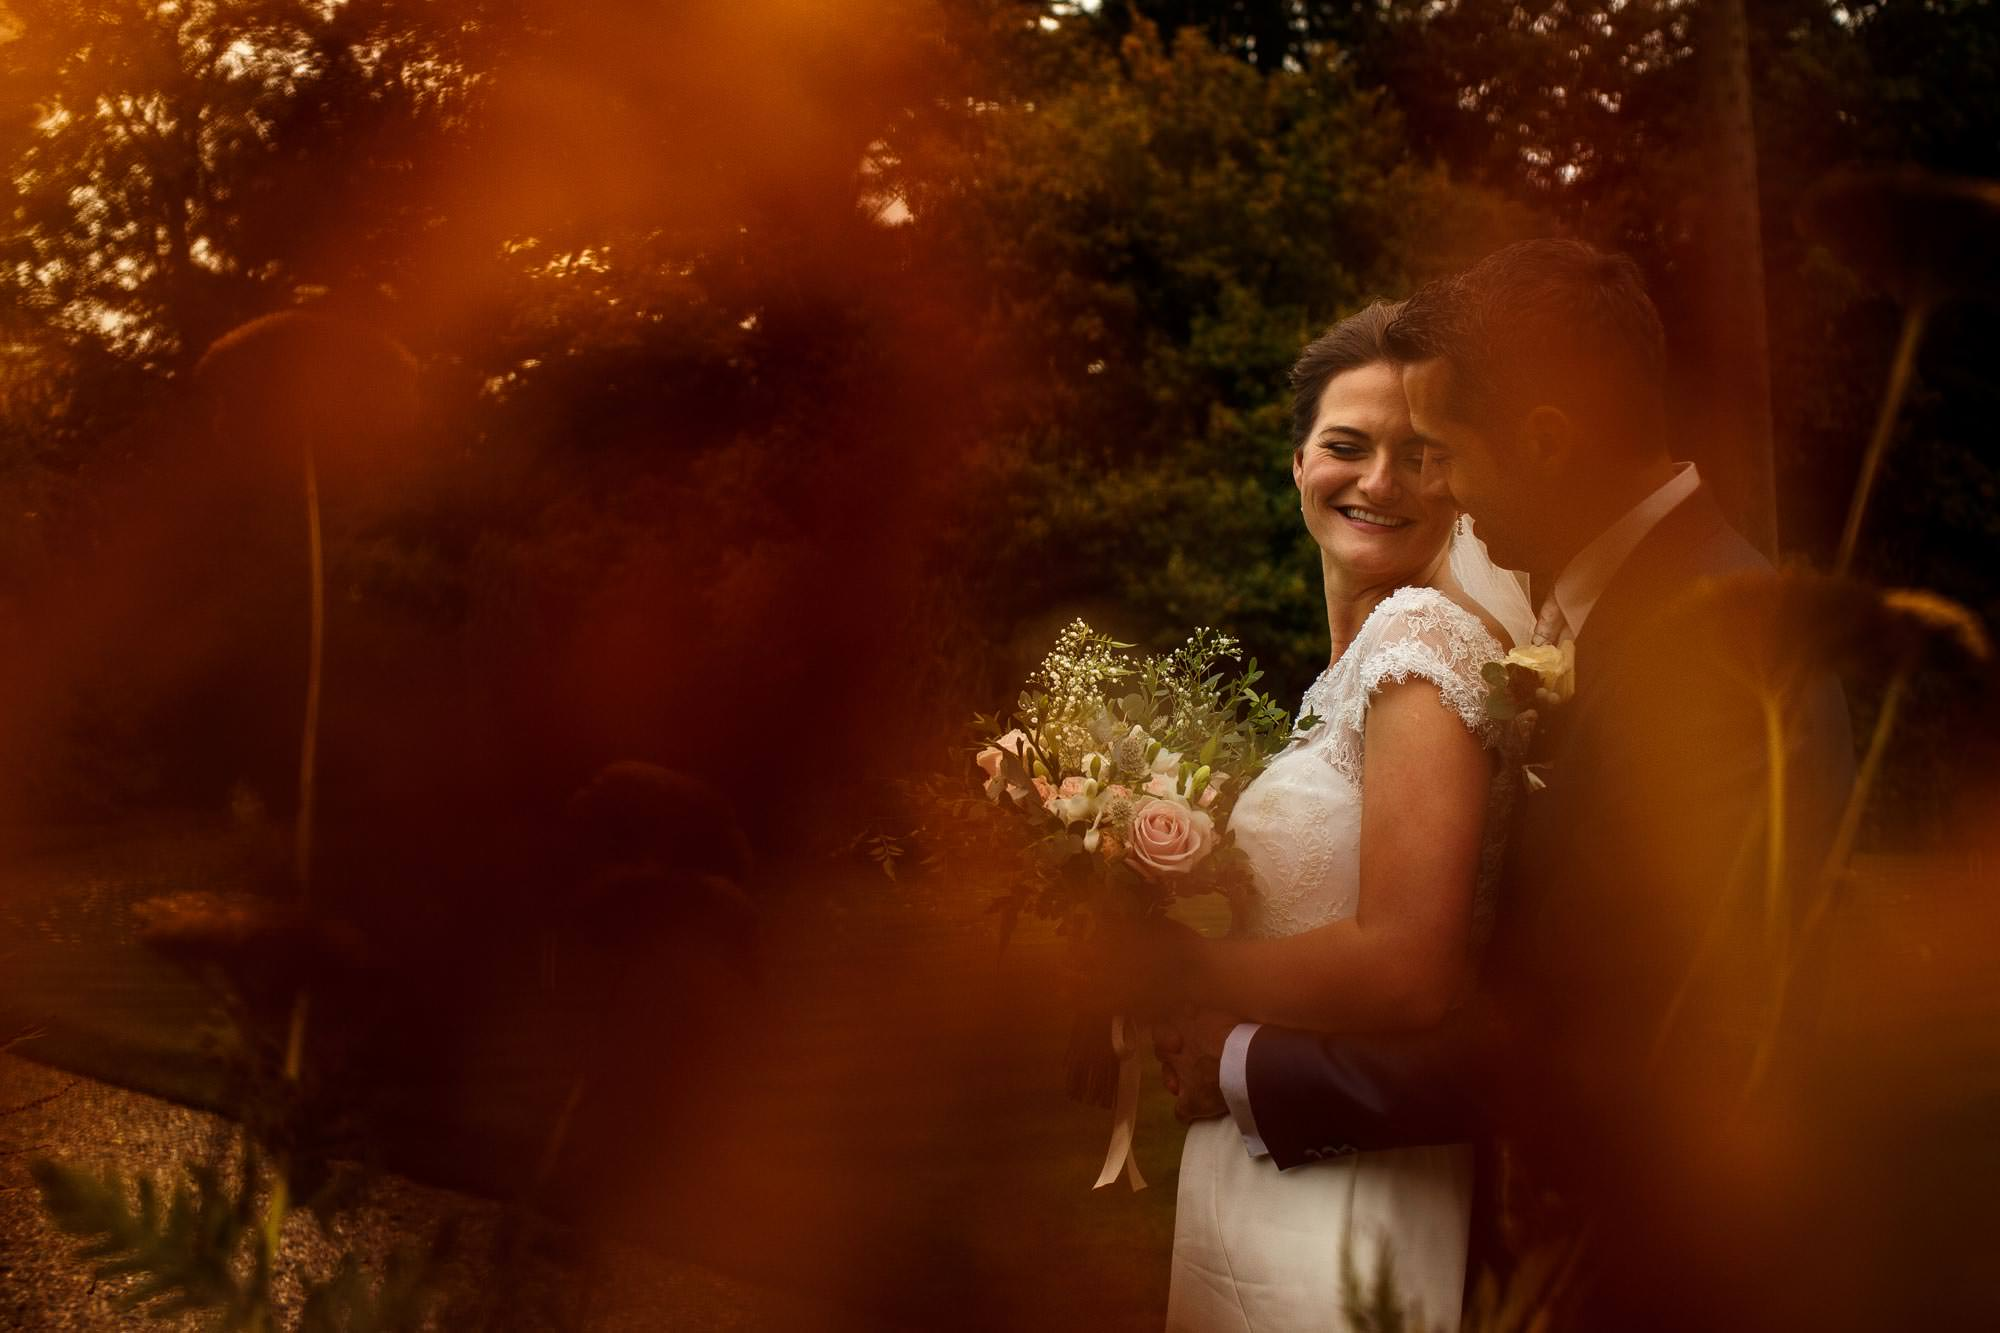 Bride and groom portrait in the gardens at Iscoyd Park